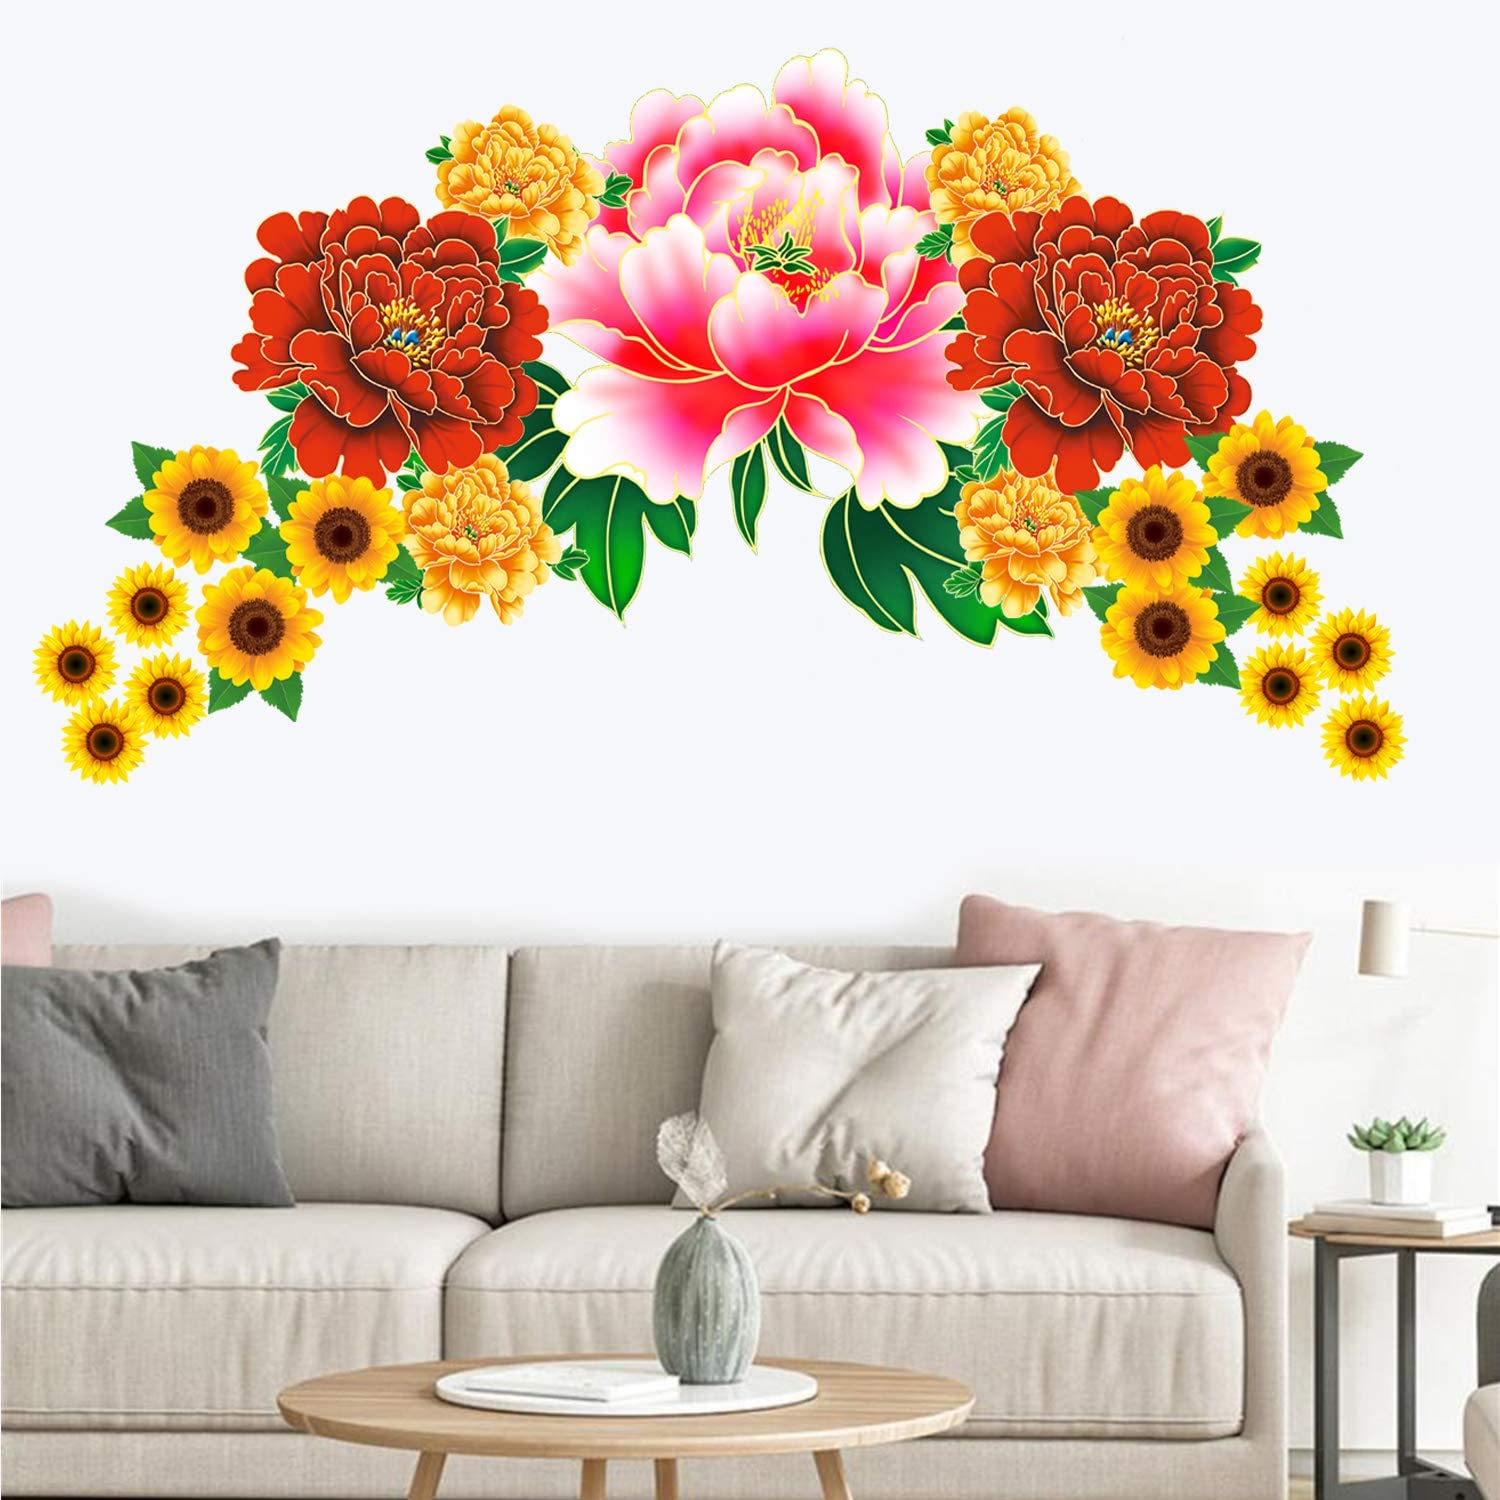 3d butterfly wall stckers wall decors wall art wall.htm amazon com 21pcs diy peony flower   sunflower wall sticker peel  peony flower   sunflower wall sticker